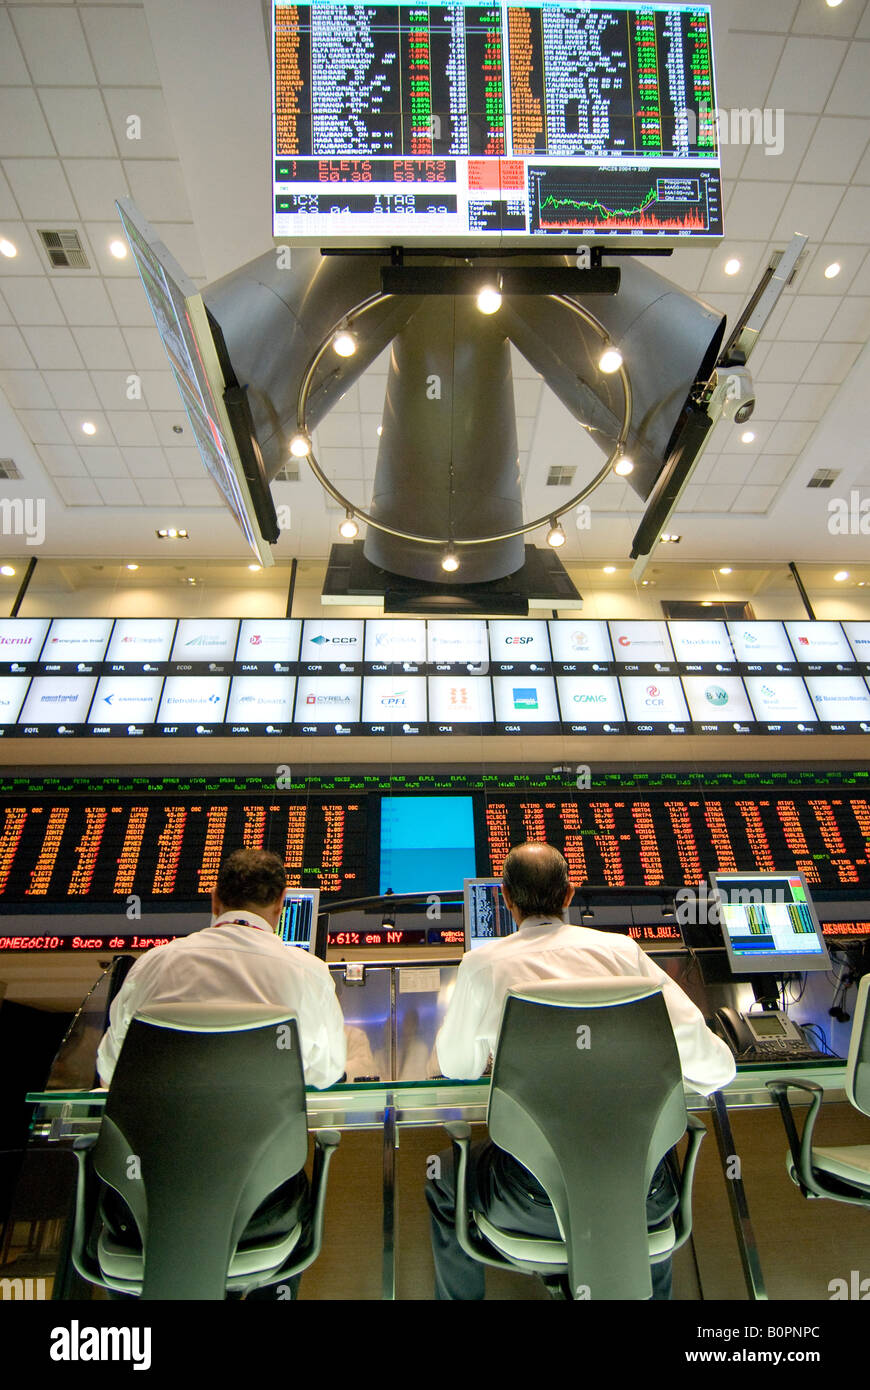 Stock brokers operate at Bovespa Sao Paulo Brazil - Stock Image